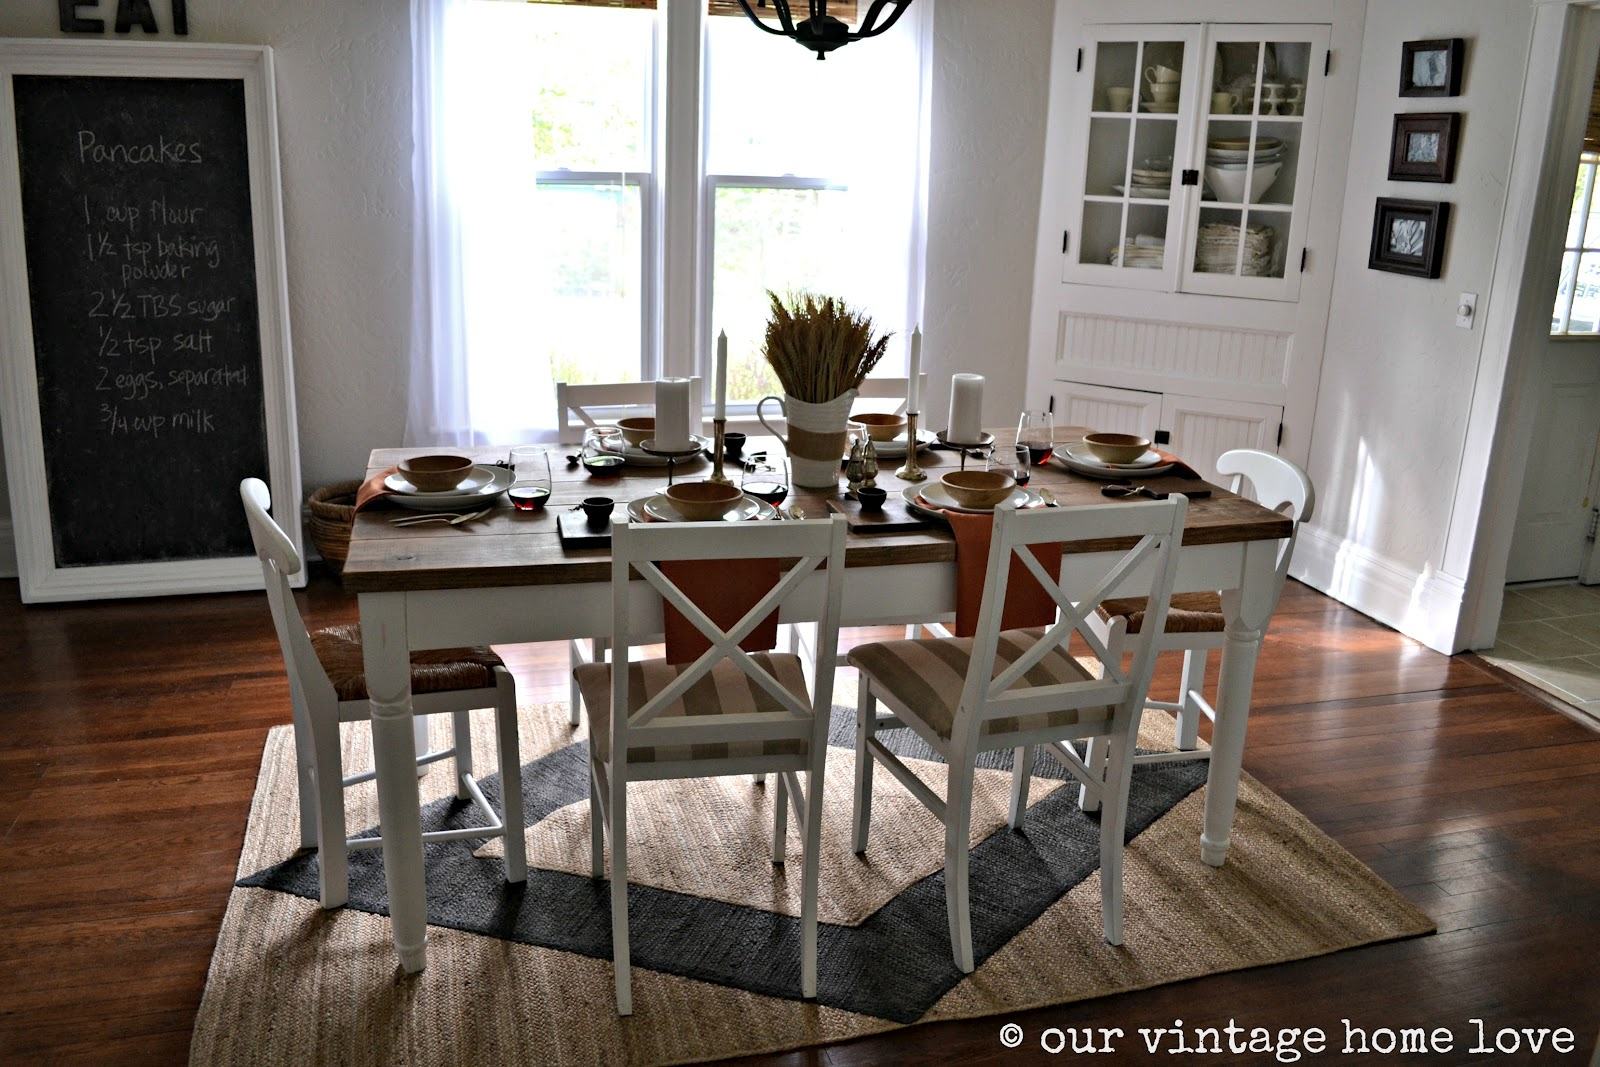 Vintage home love autumn table decor and a vintage Kitchen table in living room